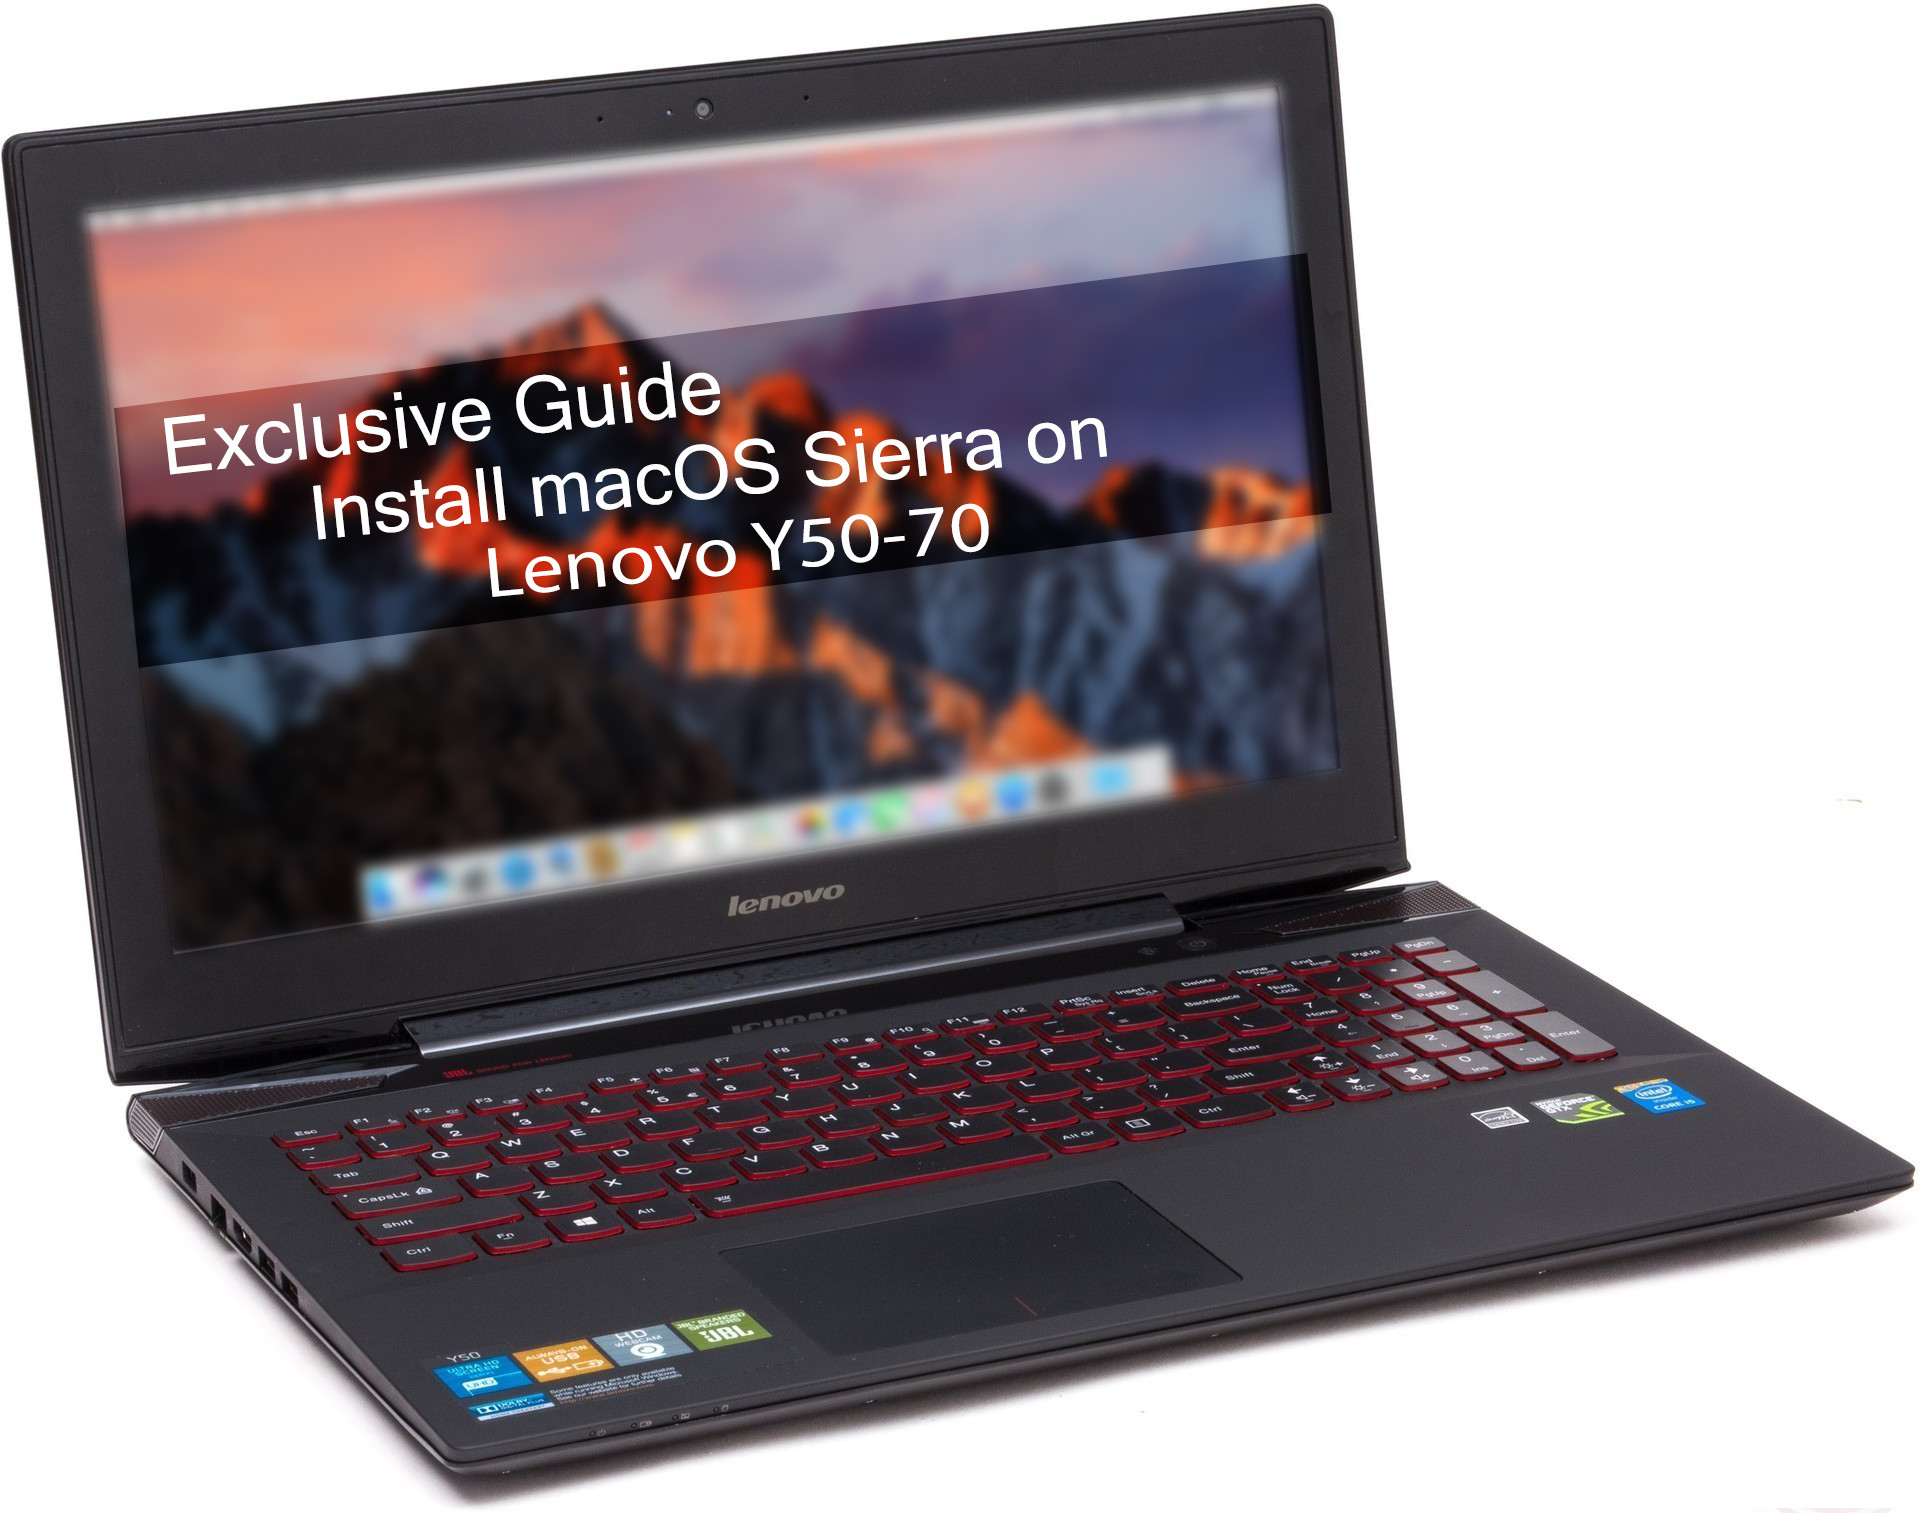 Exclusive Guide] Install macOS Sierra on Lenovo Y50-70 (1080p-UHD)